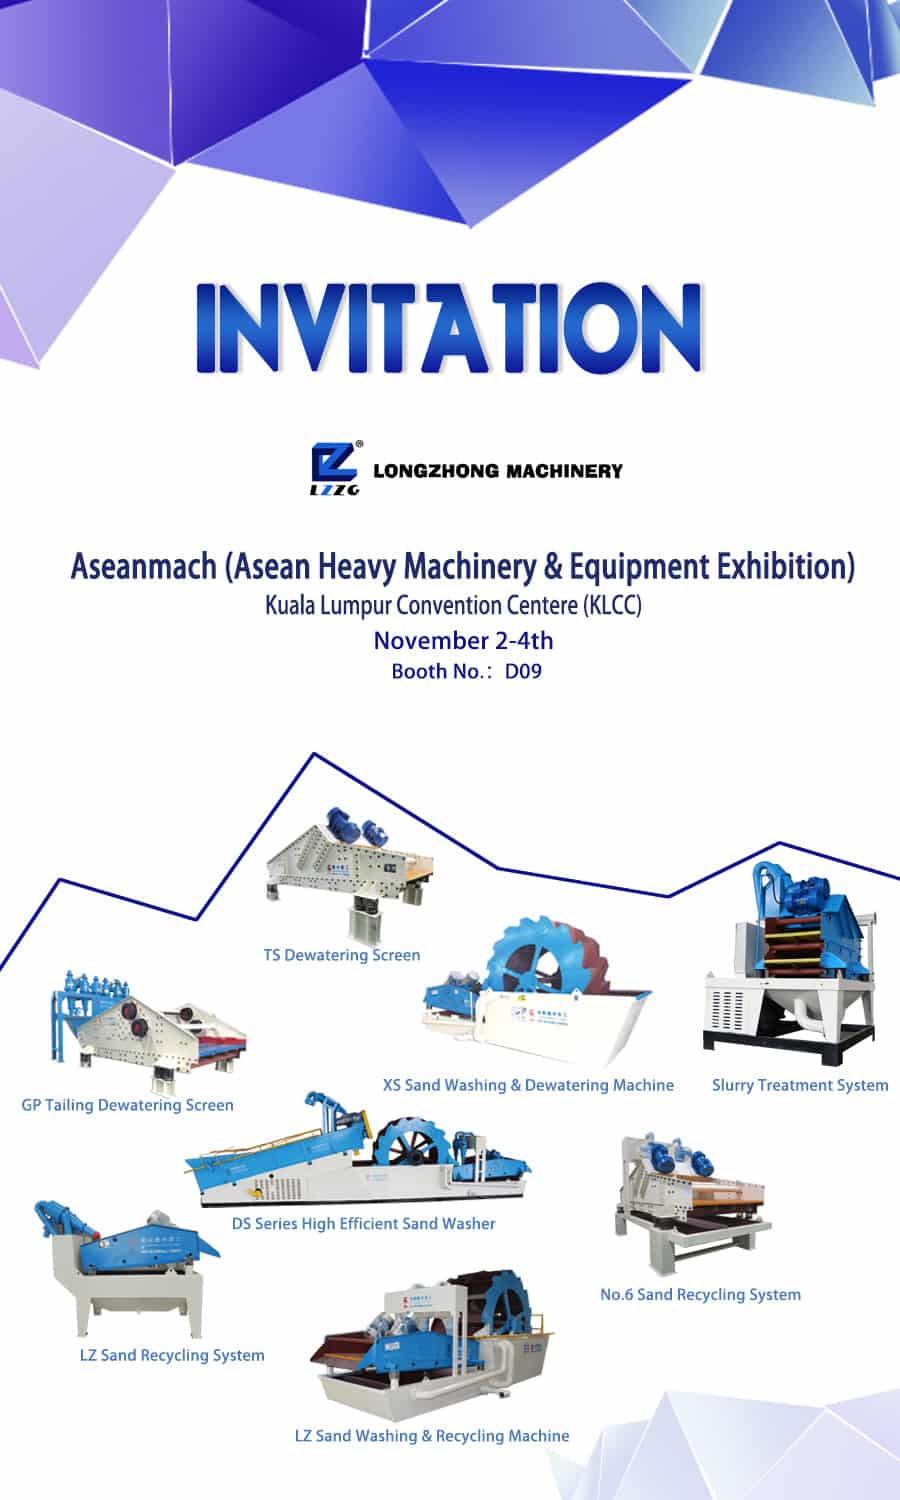 Aseanmach (Asean Heavy Machinery & Equipment Exhibition) will be held tomorrow.